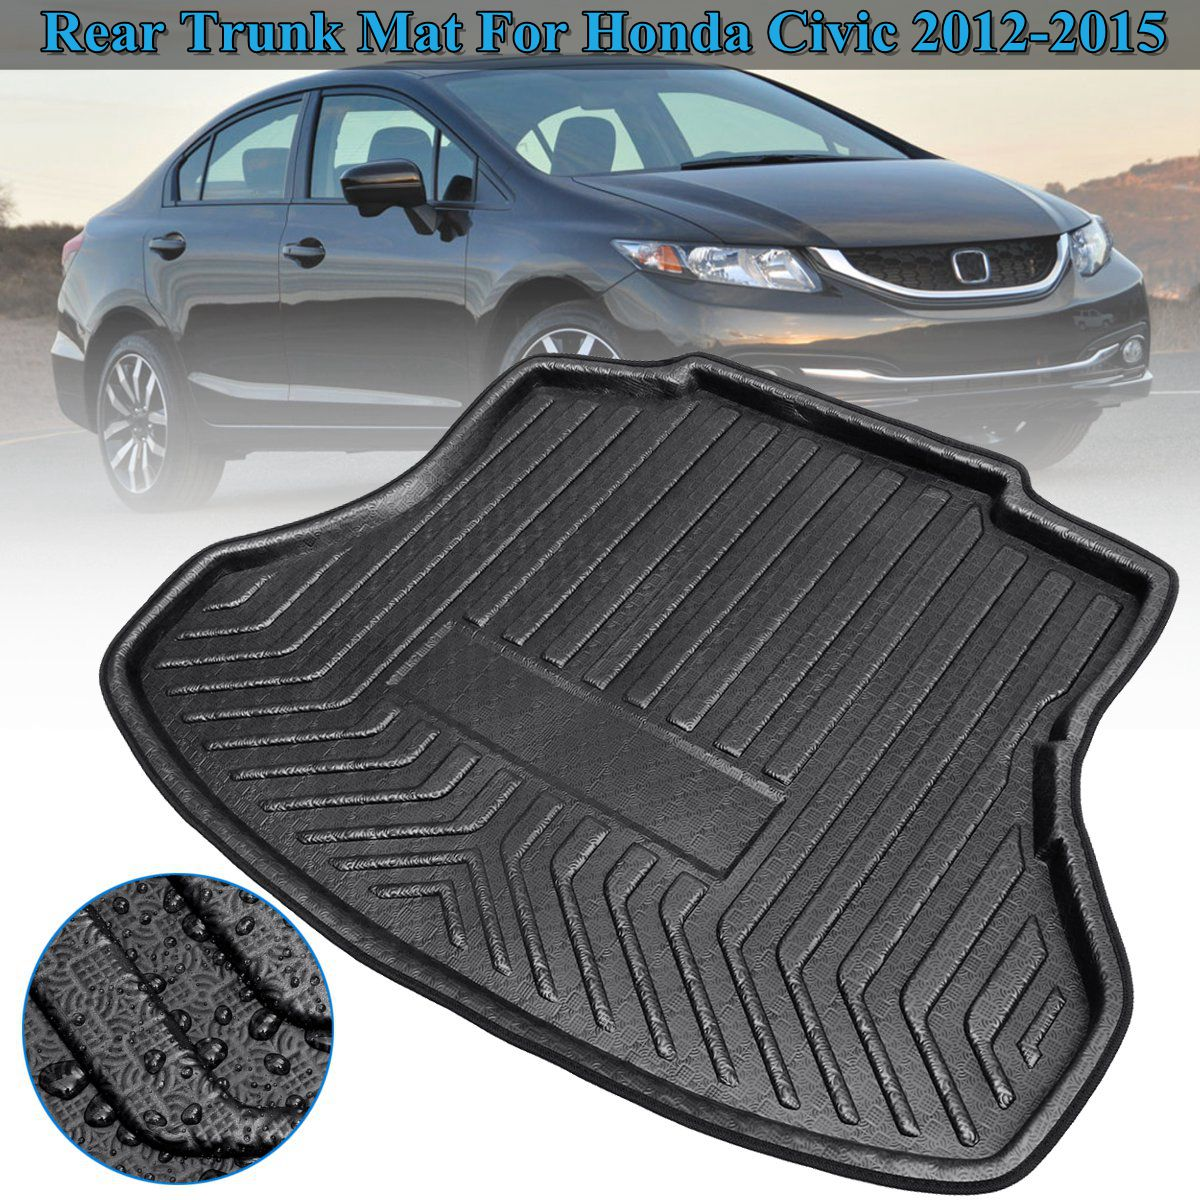 NEW Cargo Boot Liner Tray For Honda For Civic 2012 2013 2014 2015 Boot Cargo Liner Tray Rear Trunk Floor Mat Carpet Mud Pad